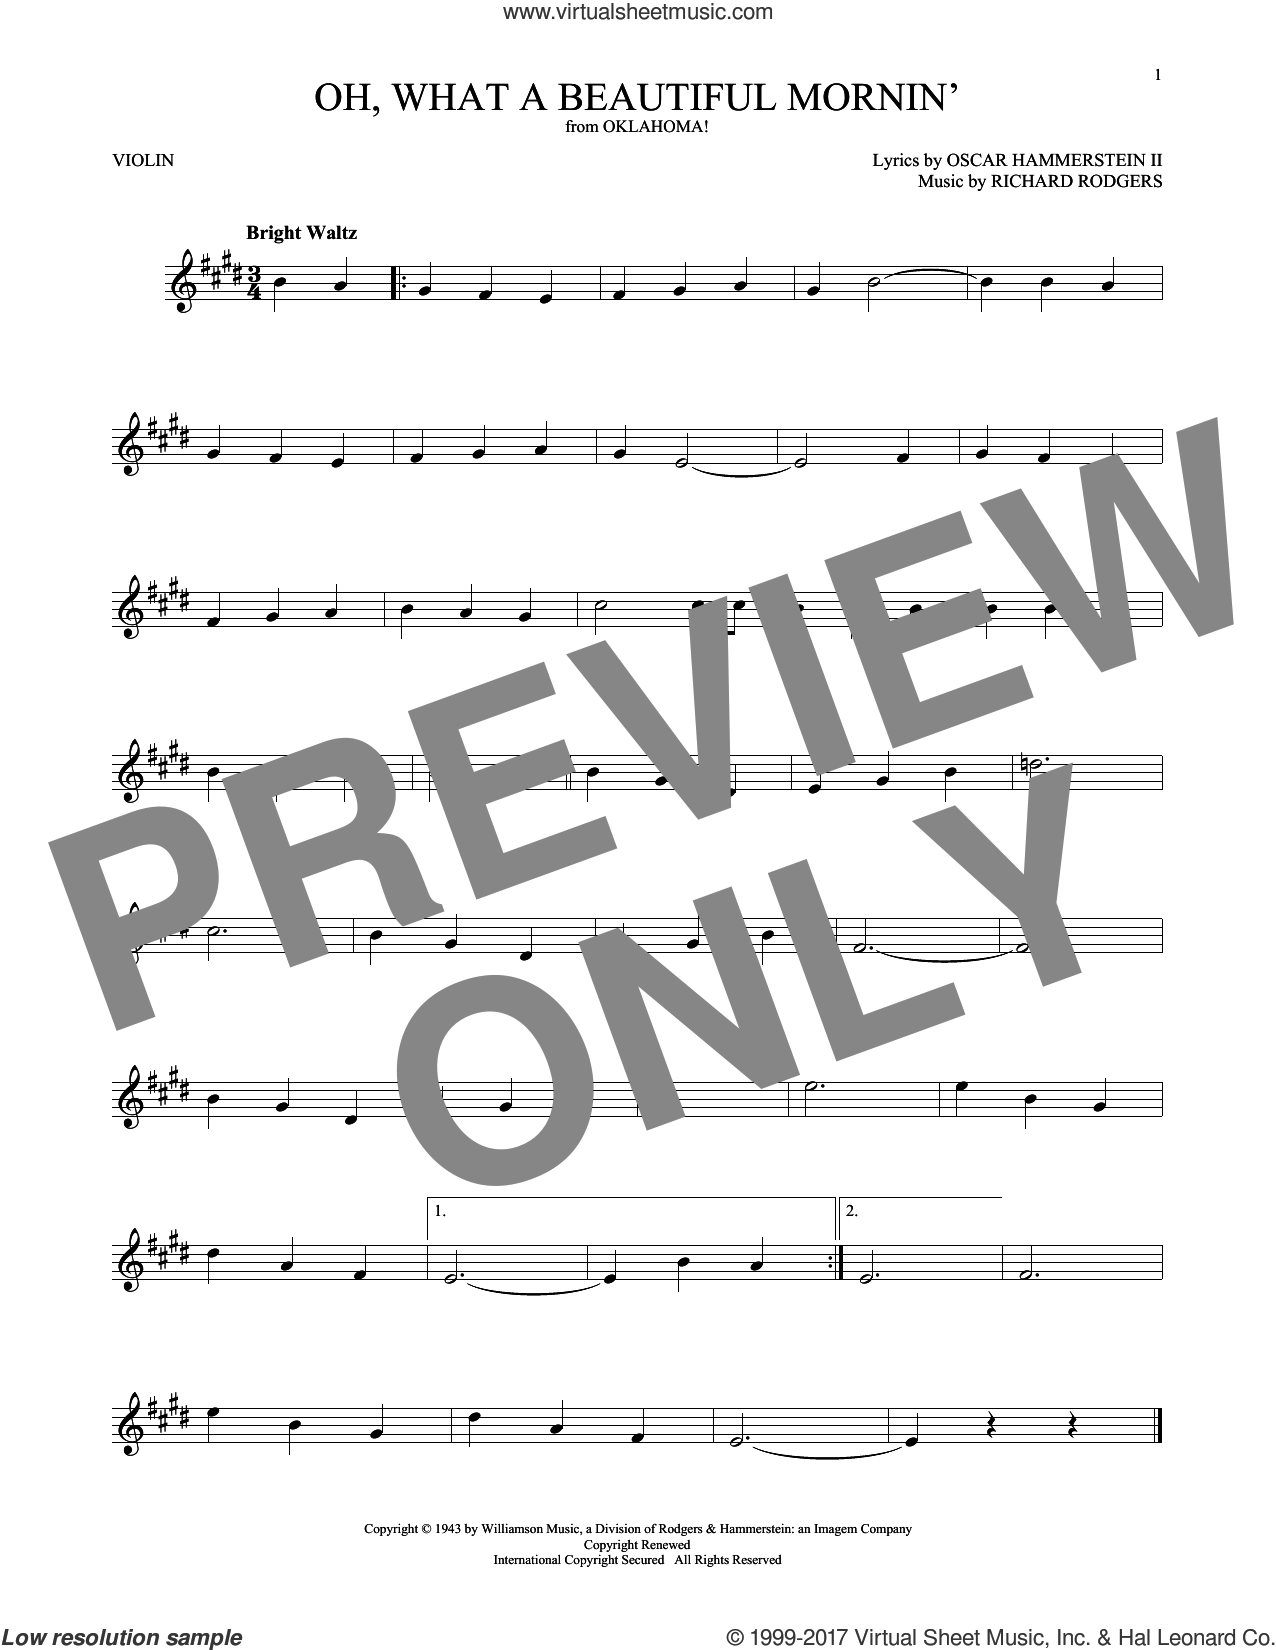 Oh, What A Beautiful Mornin' (from Oklahoma!) sheet music for violin solo by Rodgers & Hammerstein, Oscar II Hammerstein and Richard Rodgers, intermediate skill level